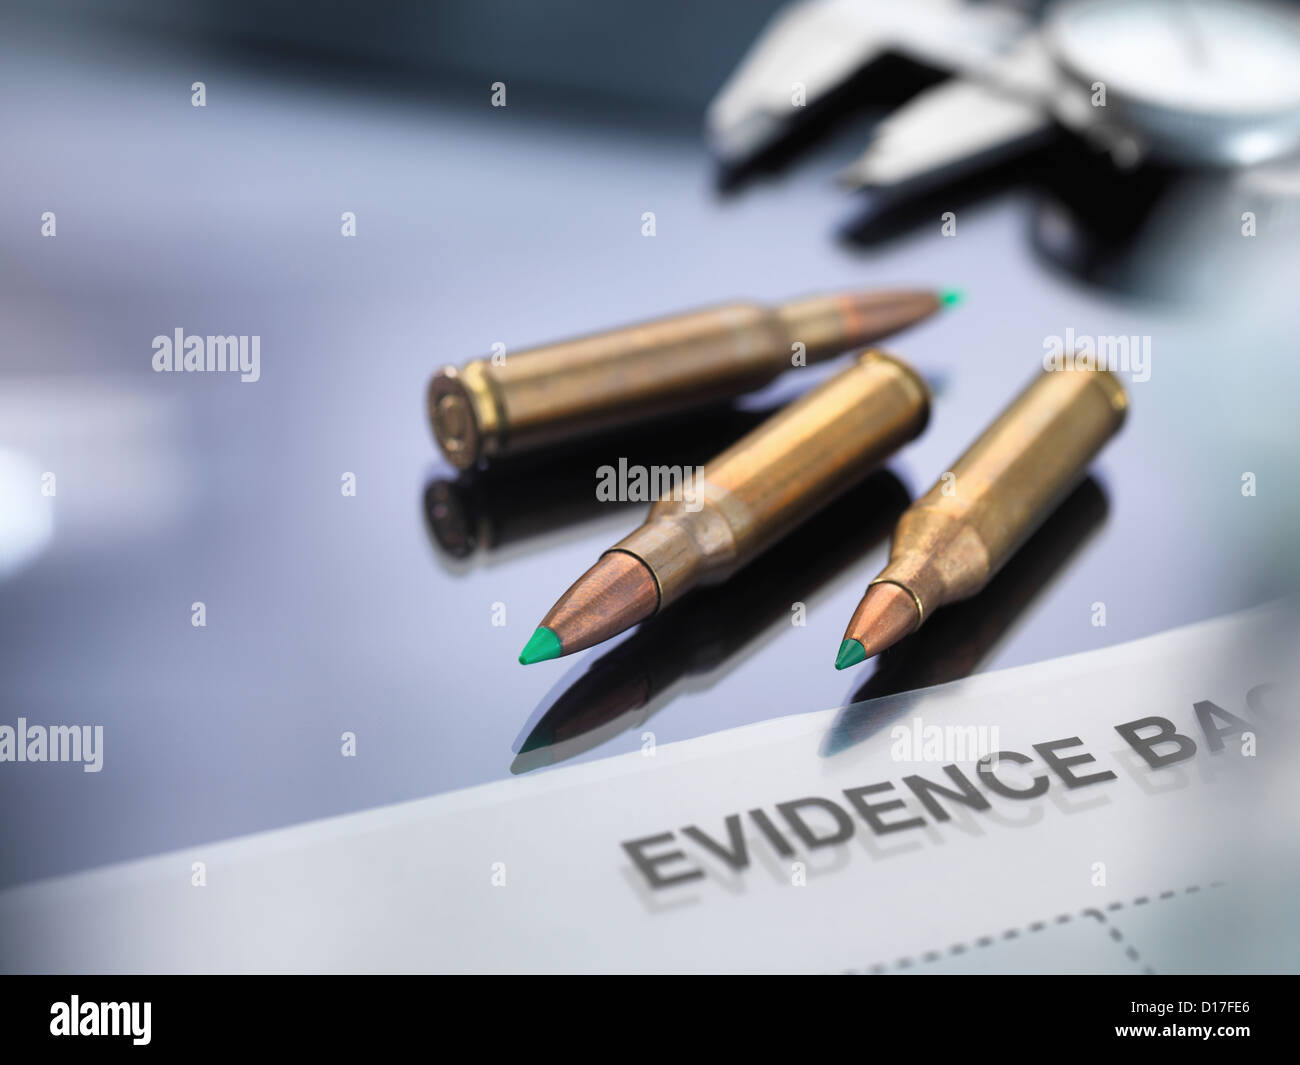 Bullets being tested and measured in a forensic lab. - Stock Image